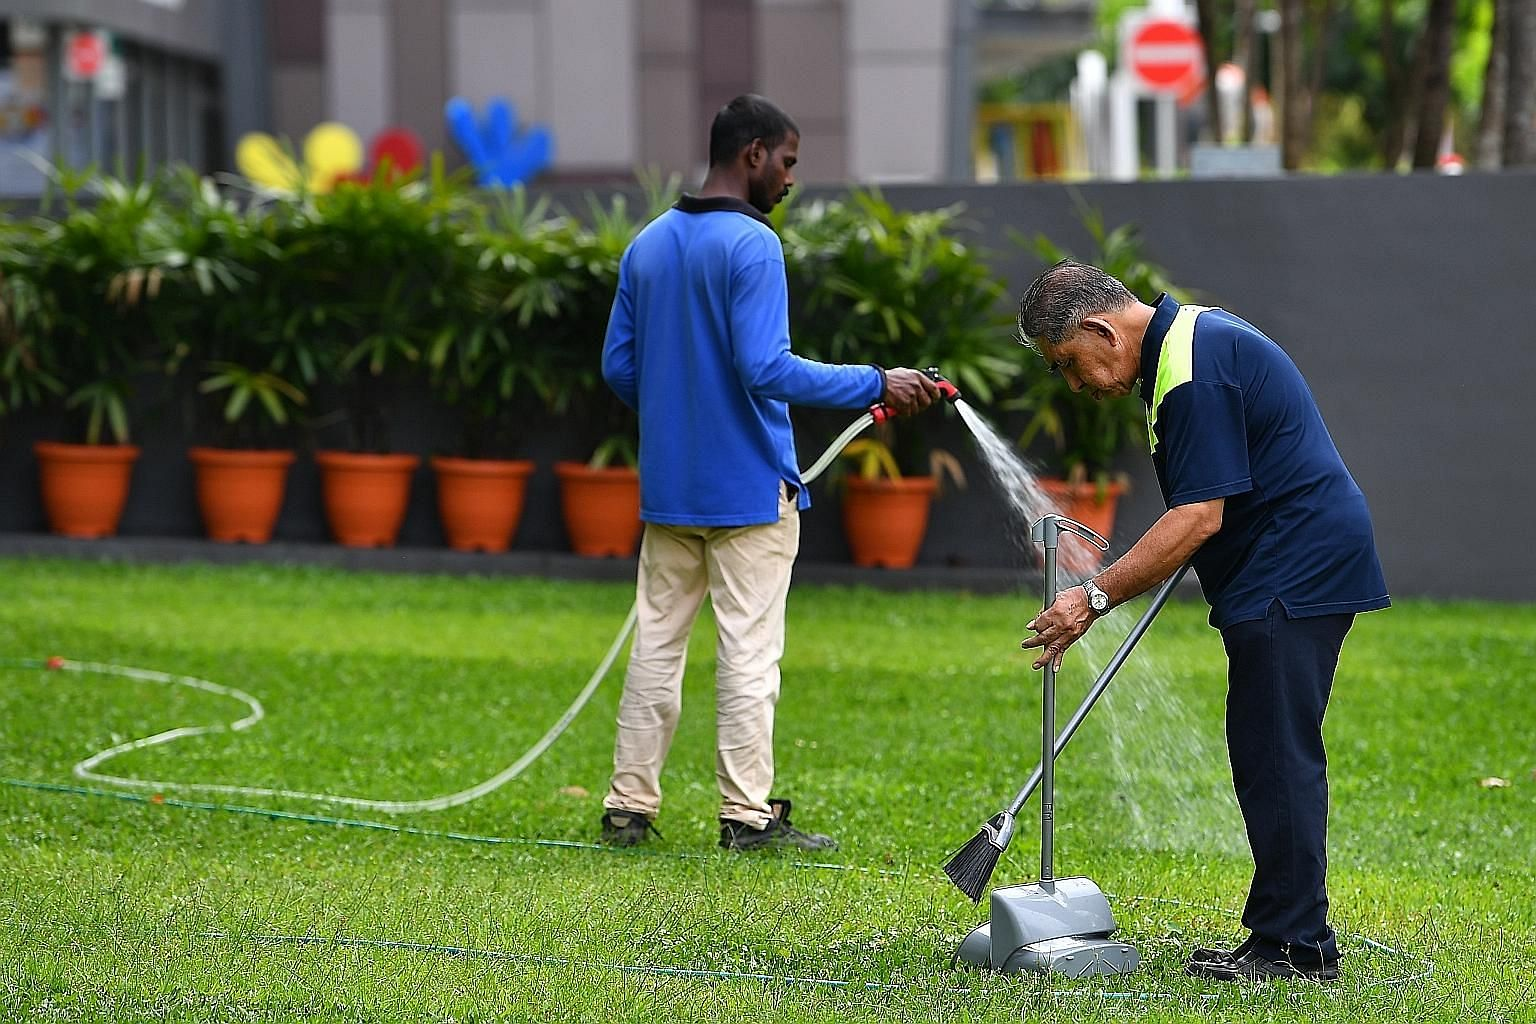 The writer says one should examine the performance of the Progressive Wage Model (PWM) using employment data from the security, cleaning and landscaping sectors, where the PWM has raised the minimum wage.